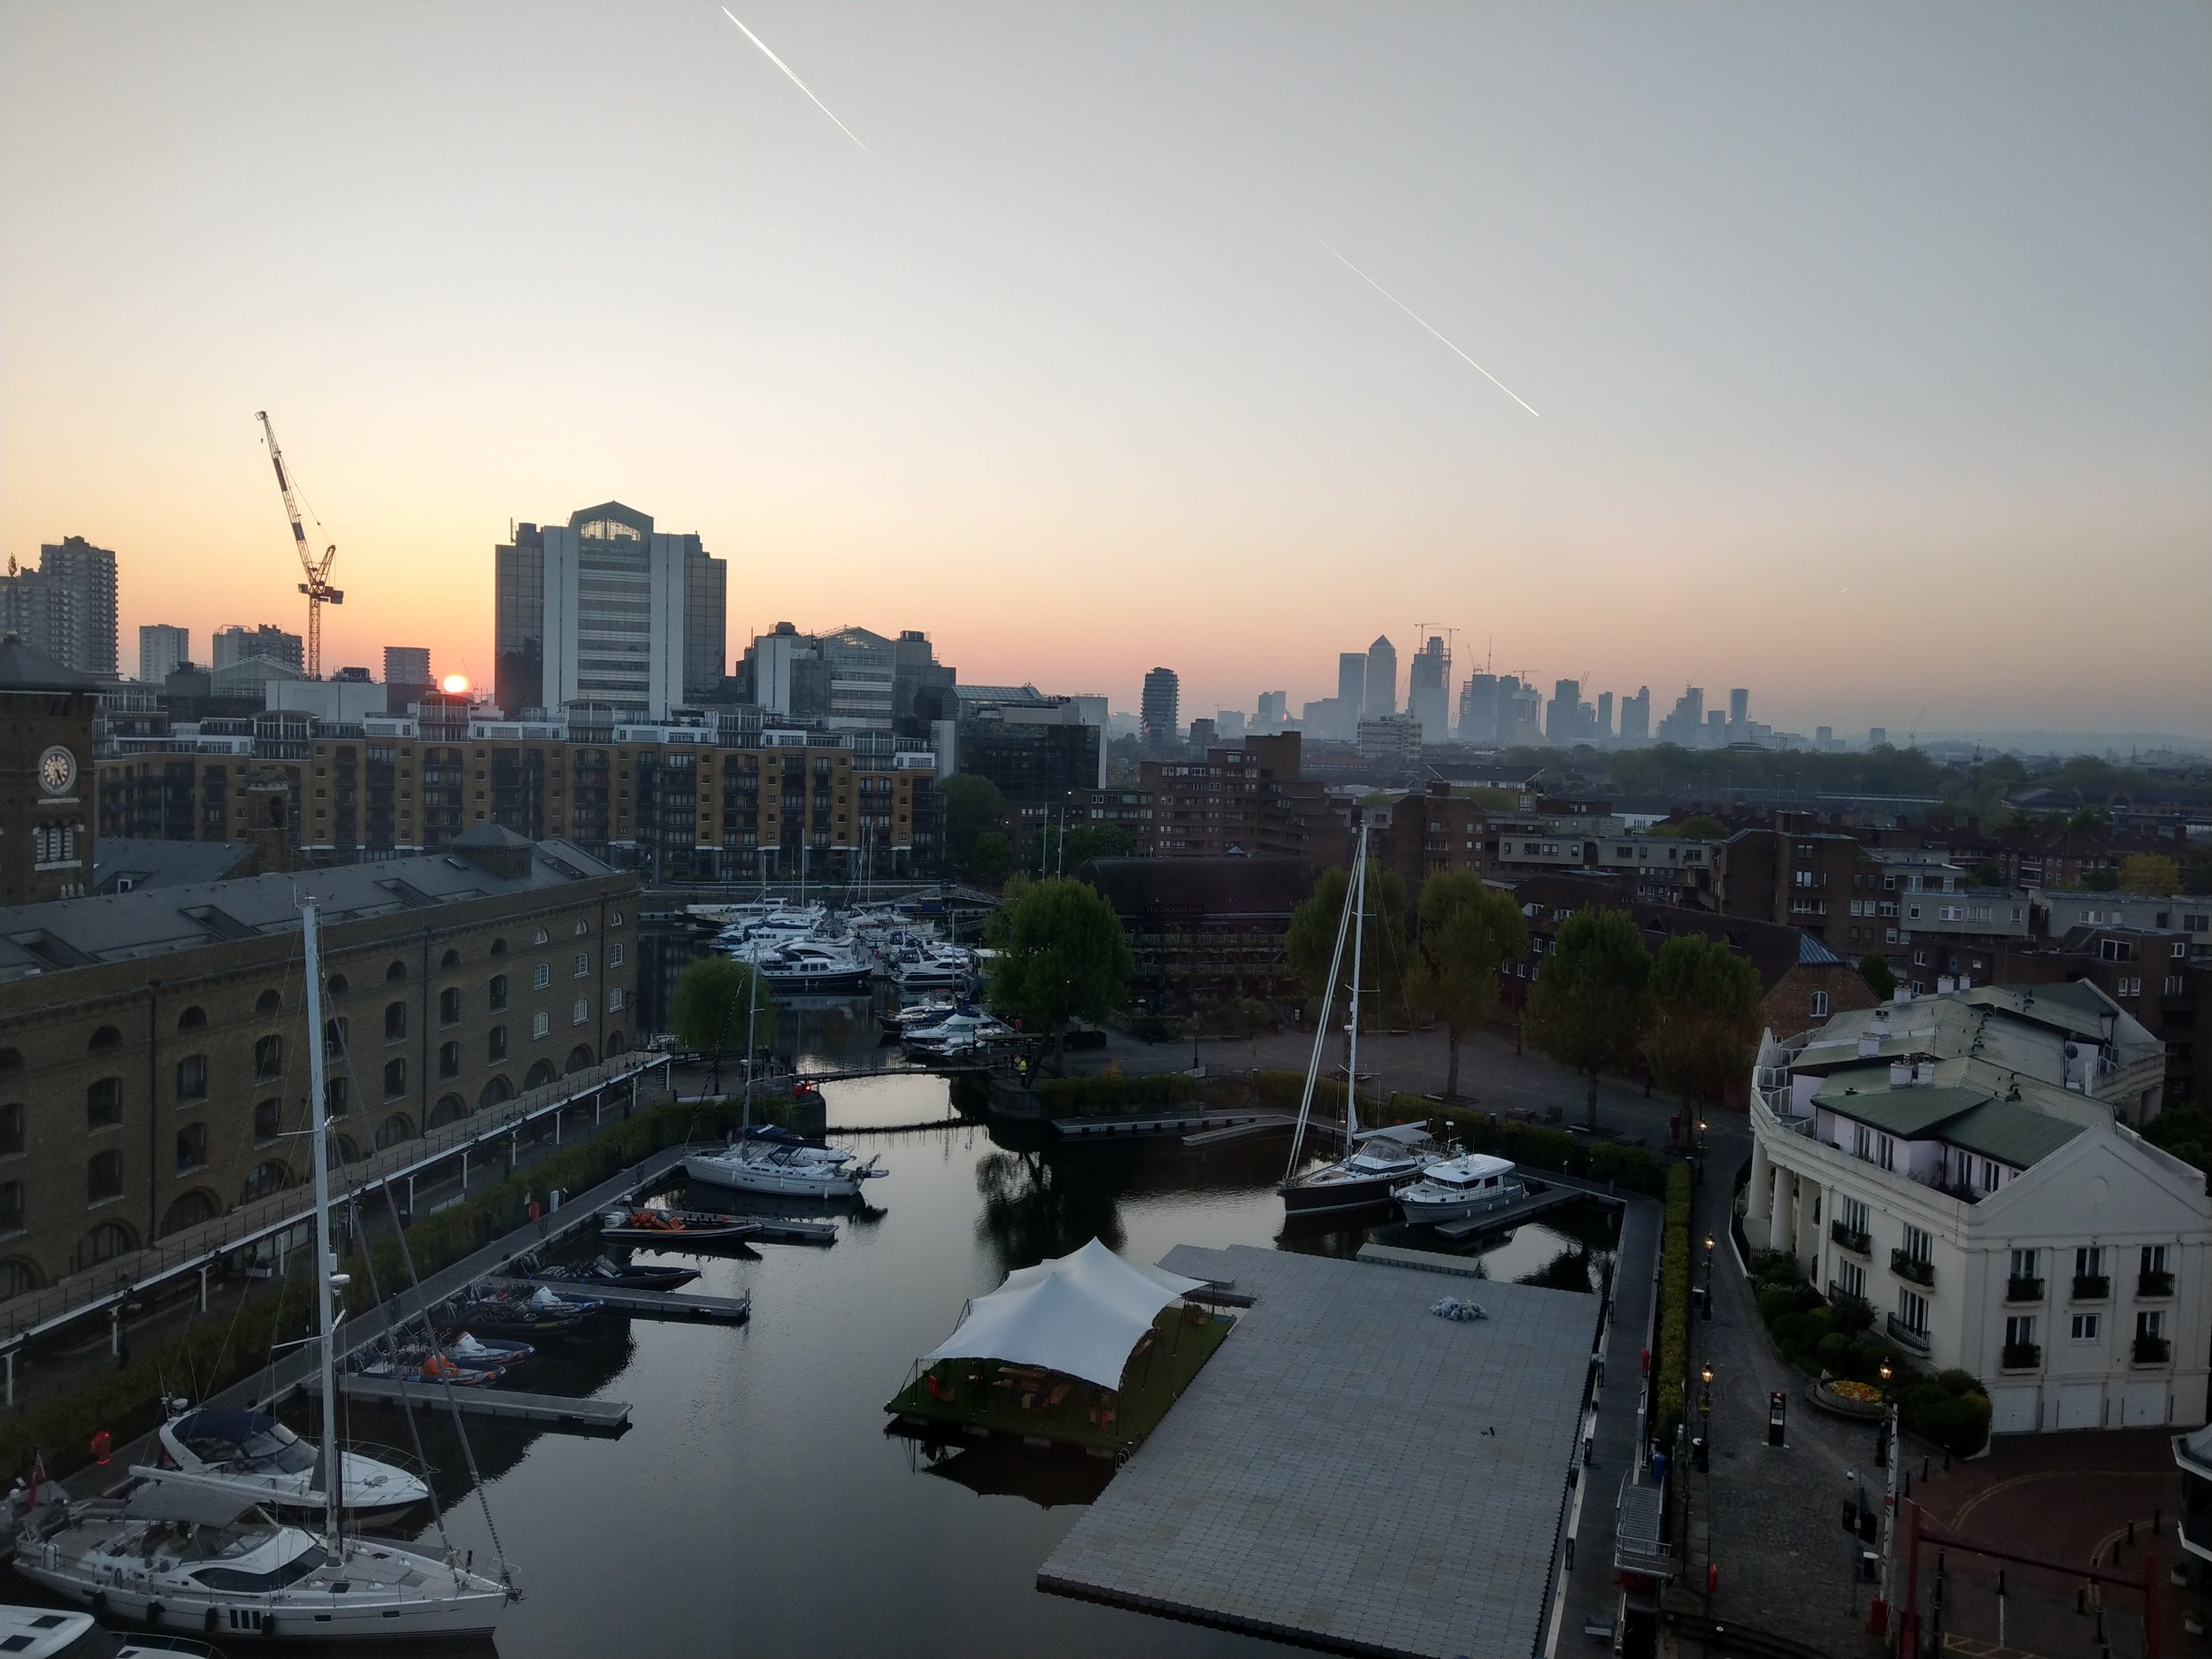 From St. Katharine Docks in London, looking out at Canary Wharf at sunrise